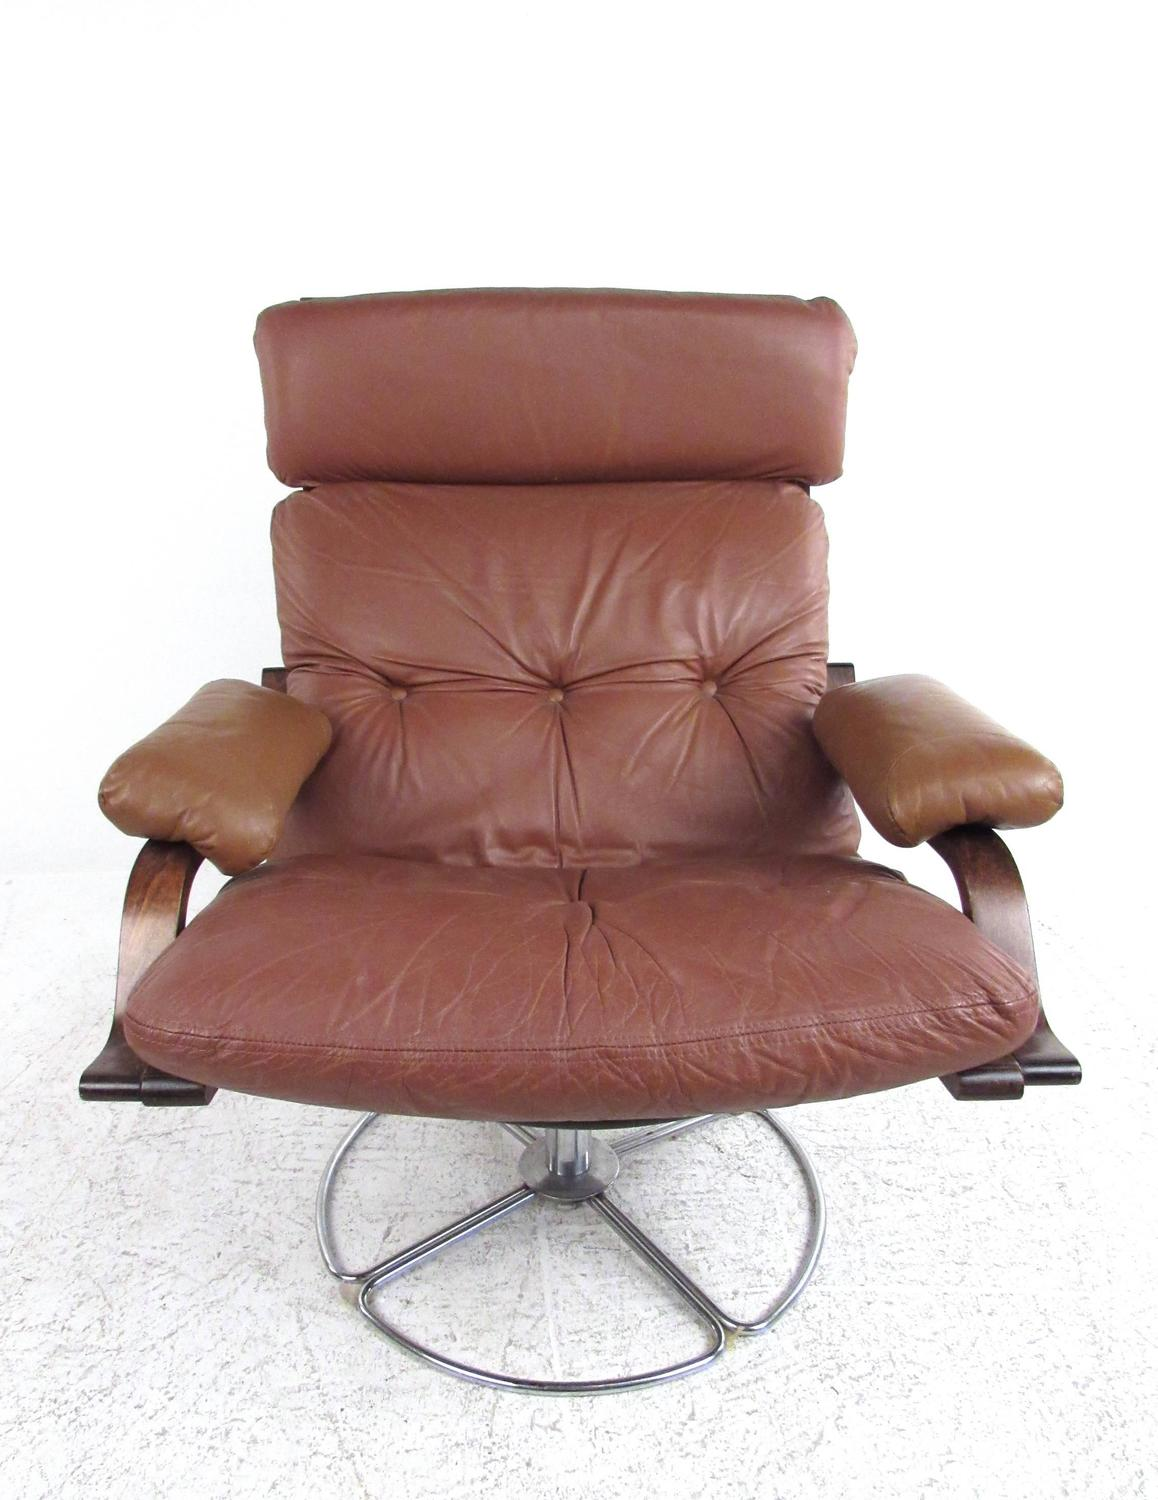 swivel club chair with ottoman old wooden high parts vintage leather westnofa style lounge